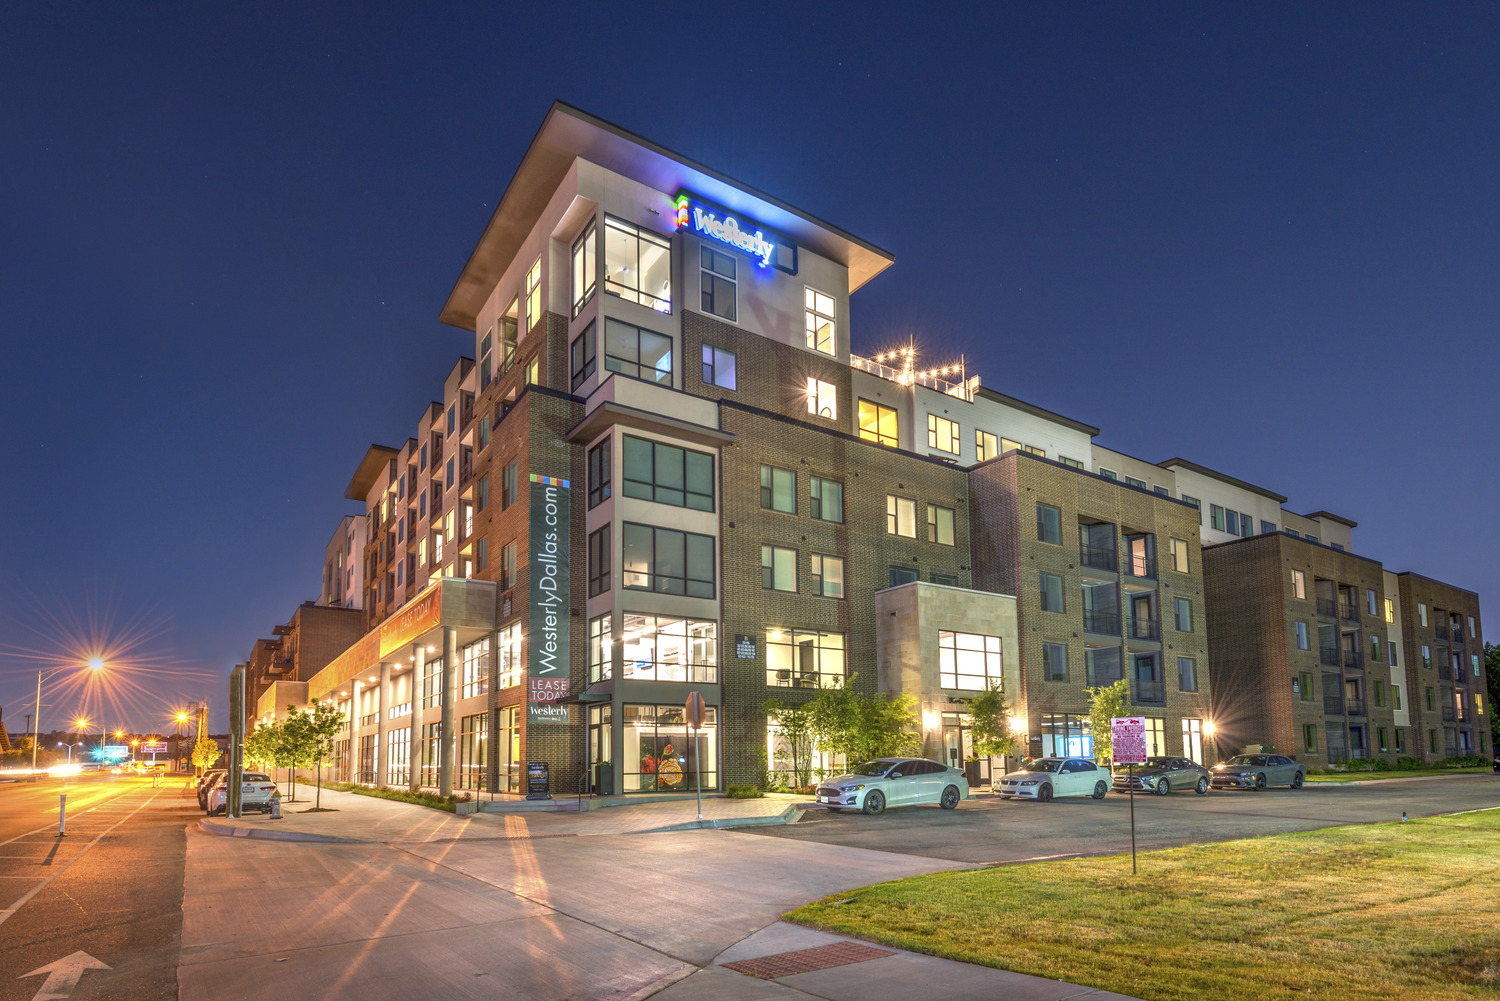 CBG builds The Westerly, a Seven-Story Luxury Community with Rooftop Skydeck in Dallas, TX